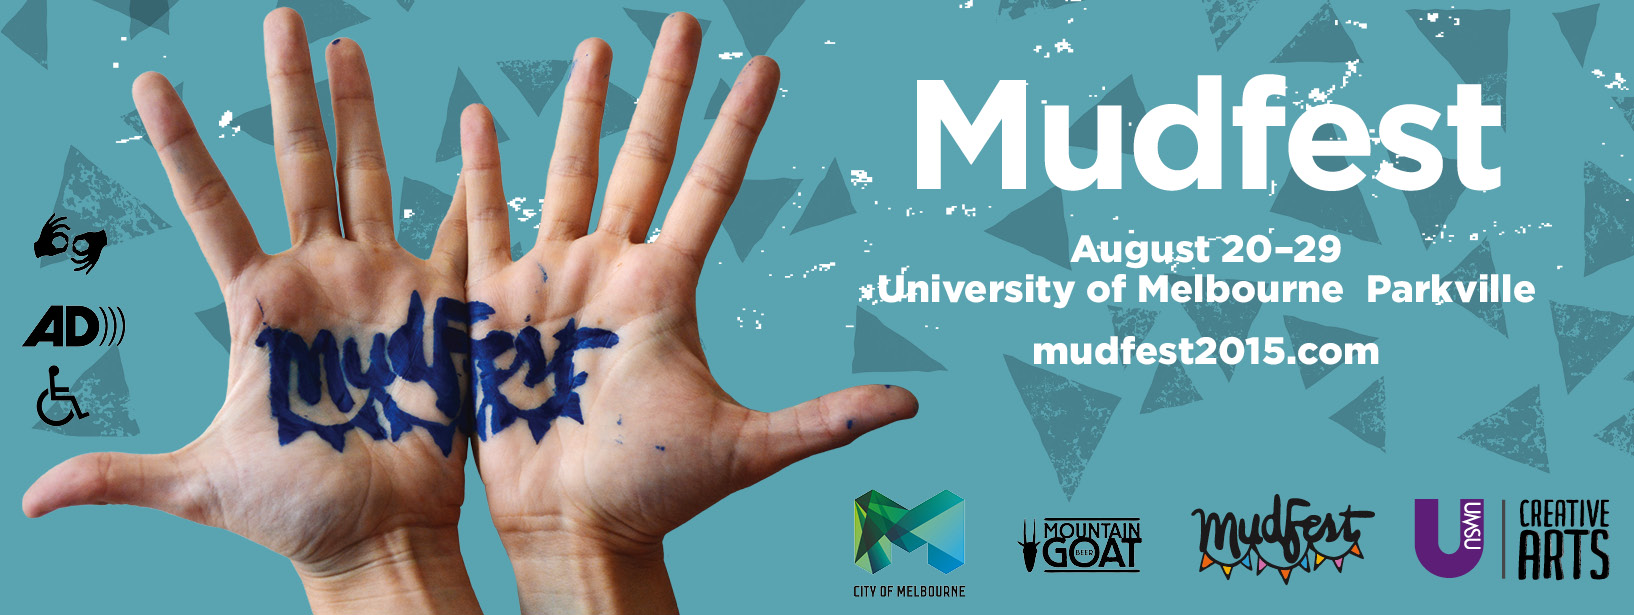 MUDFEST FB EVENT